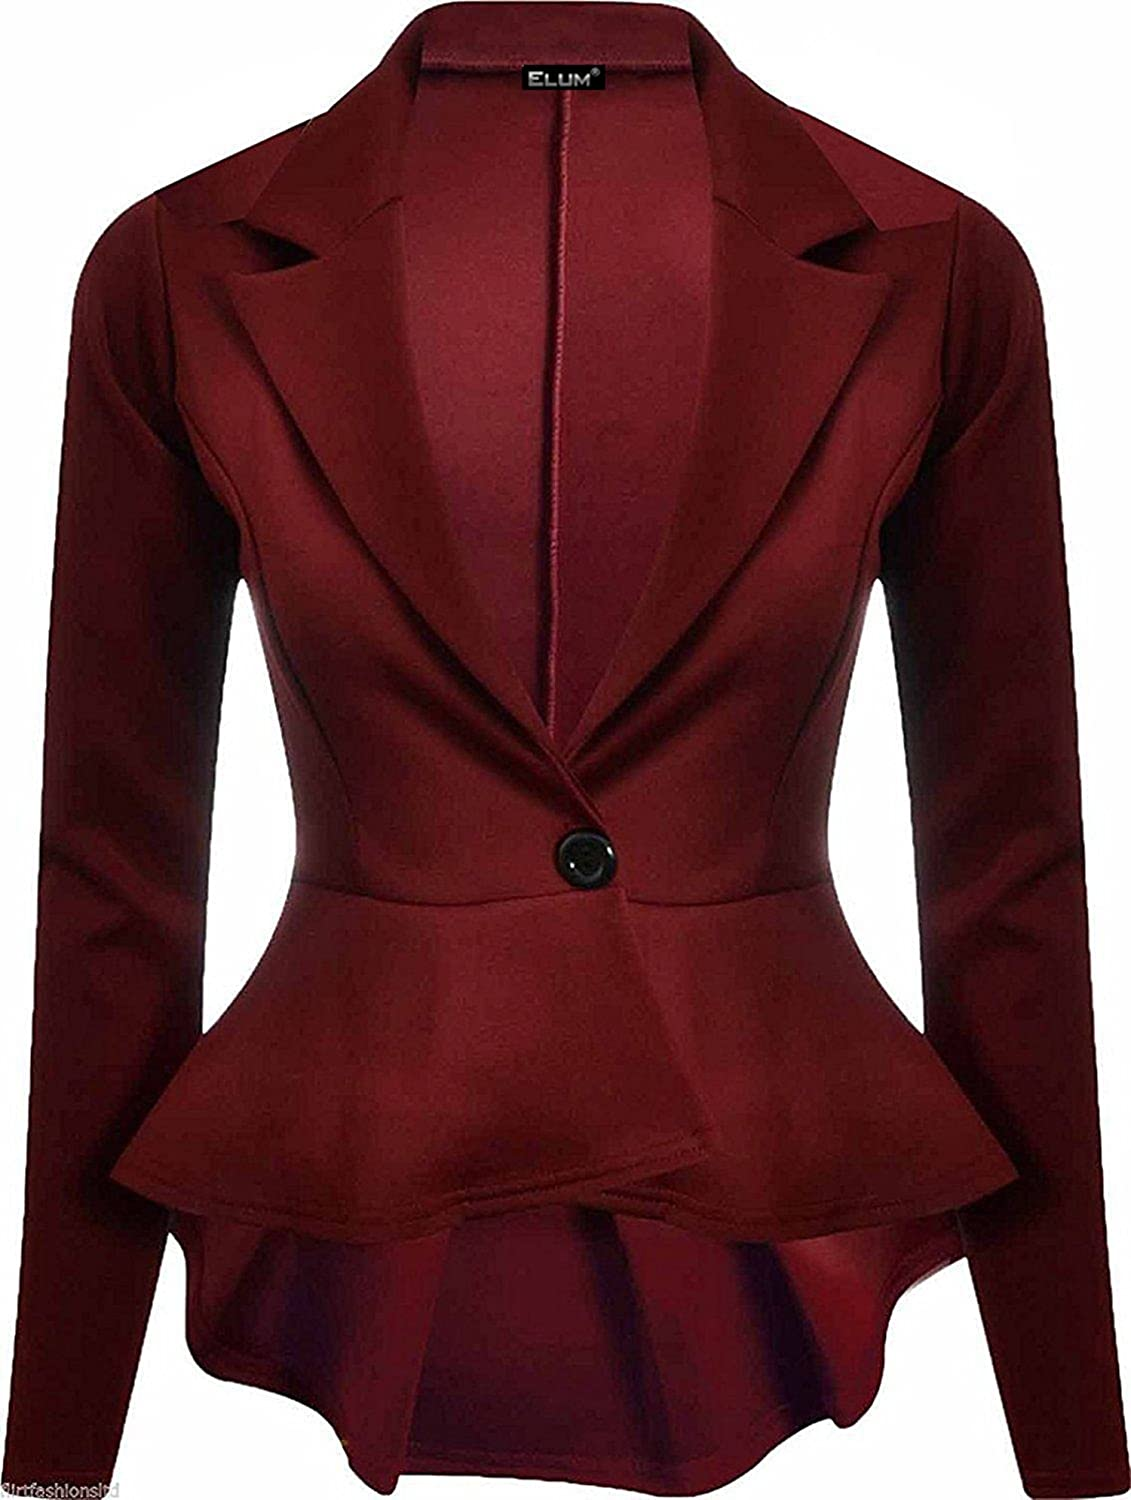 Elum® Womens Long Sleeves Crop Frill Shift Slim Fit Peplum Blazer Jacket Coat